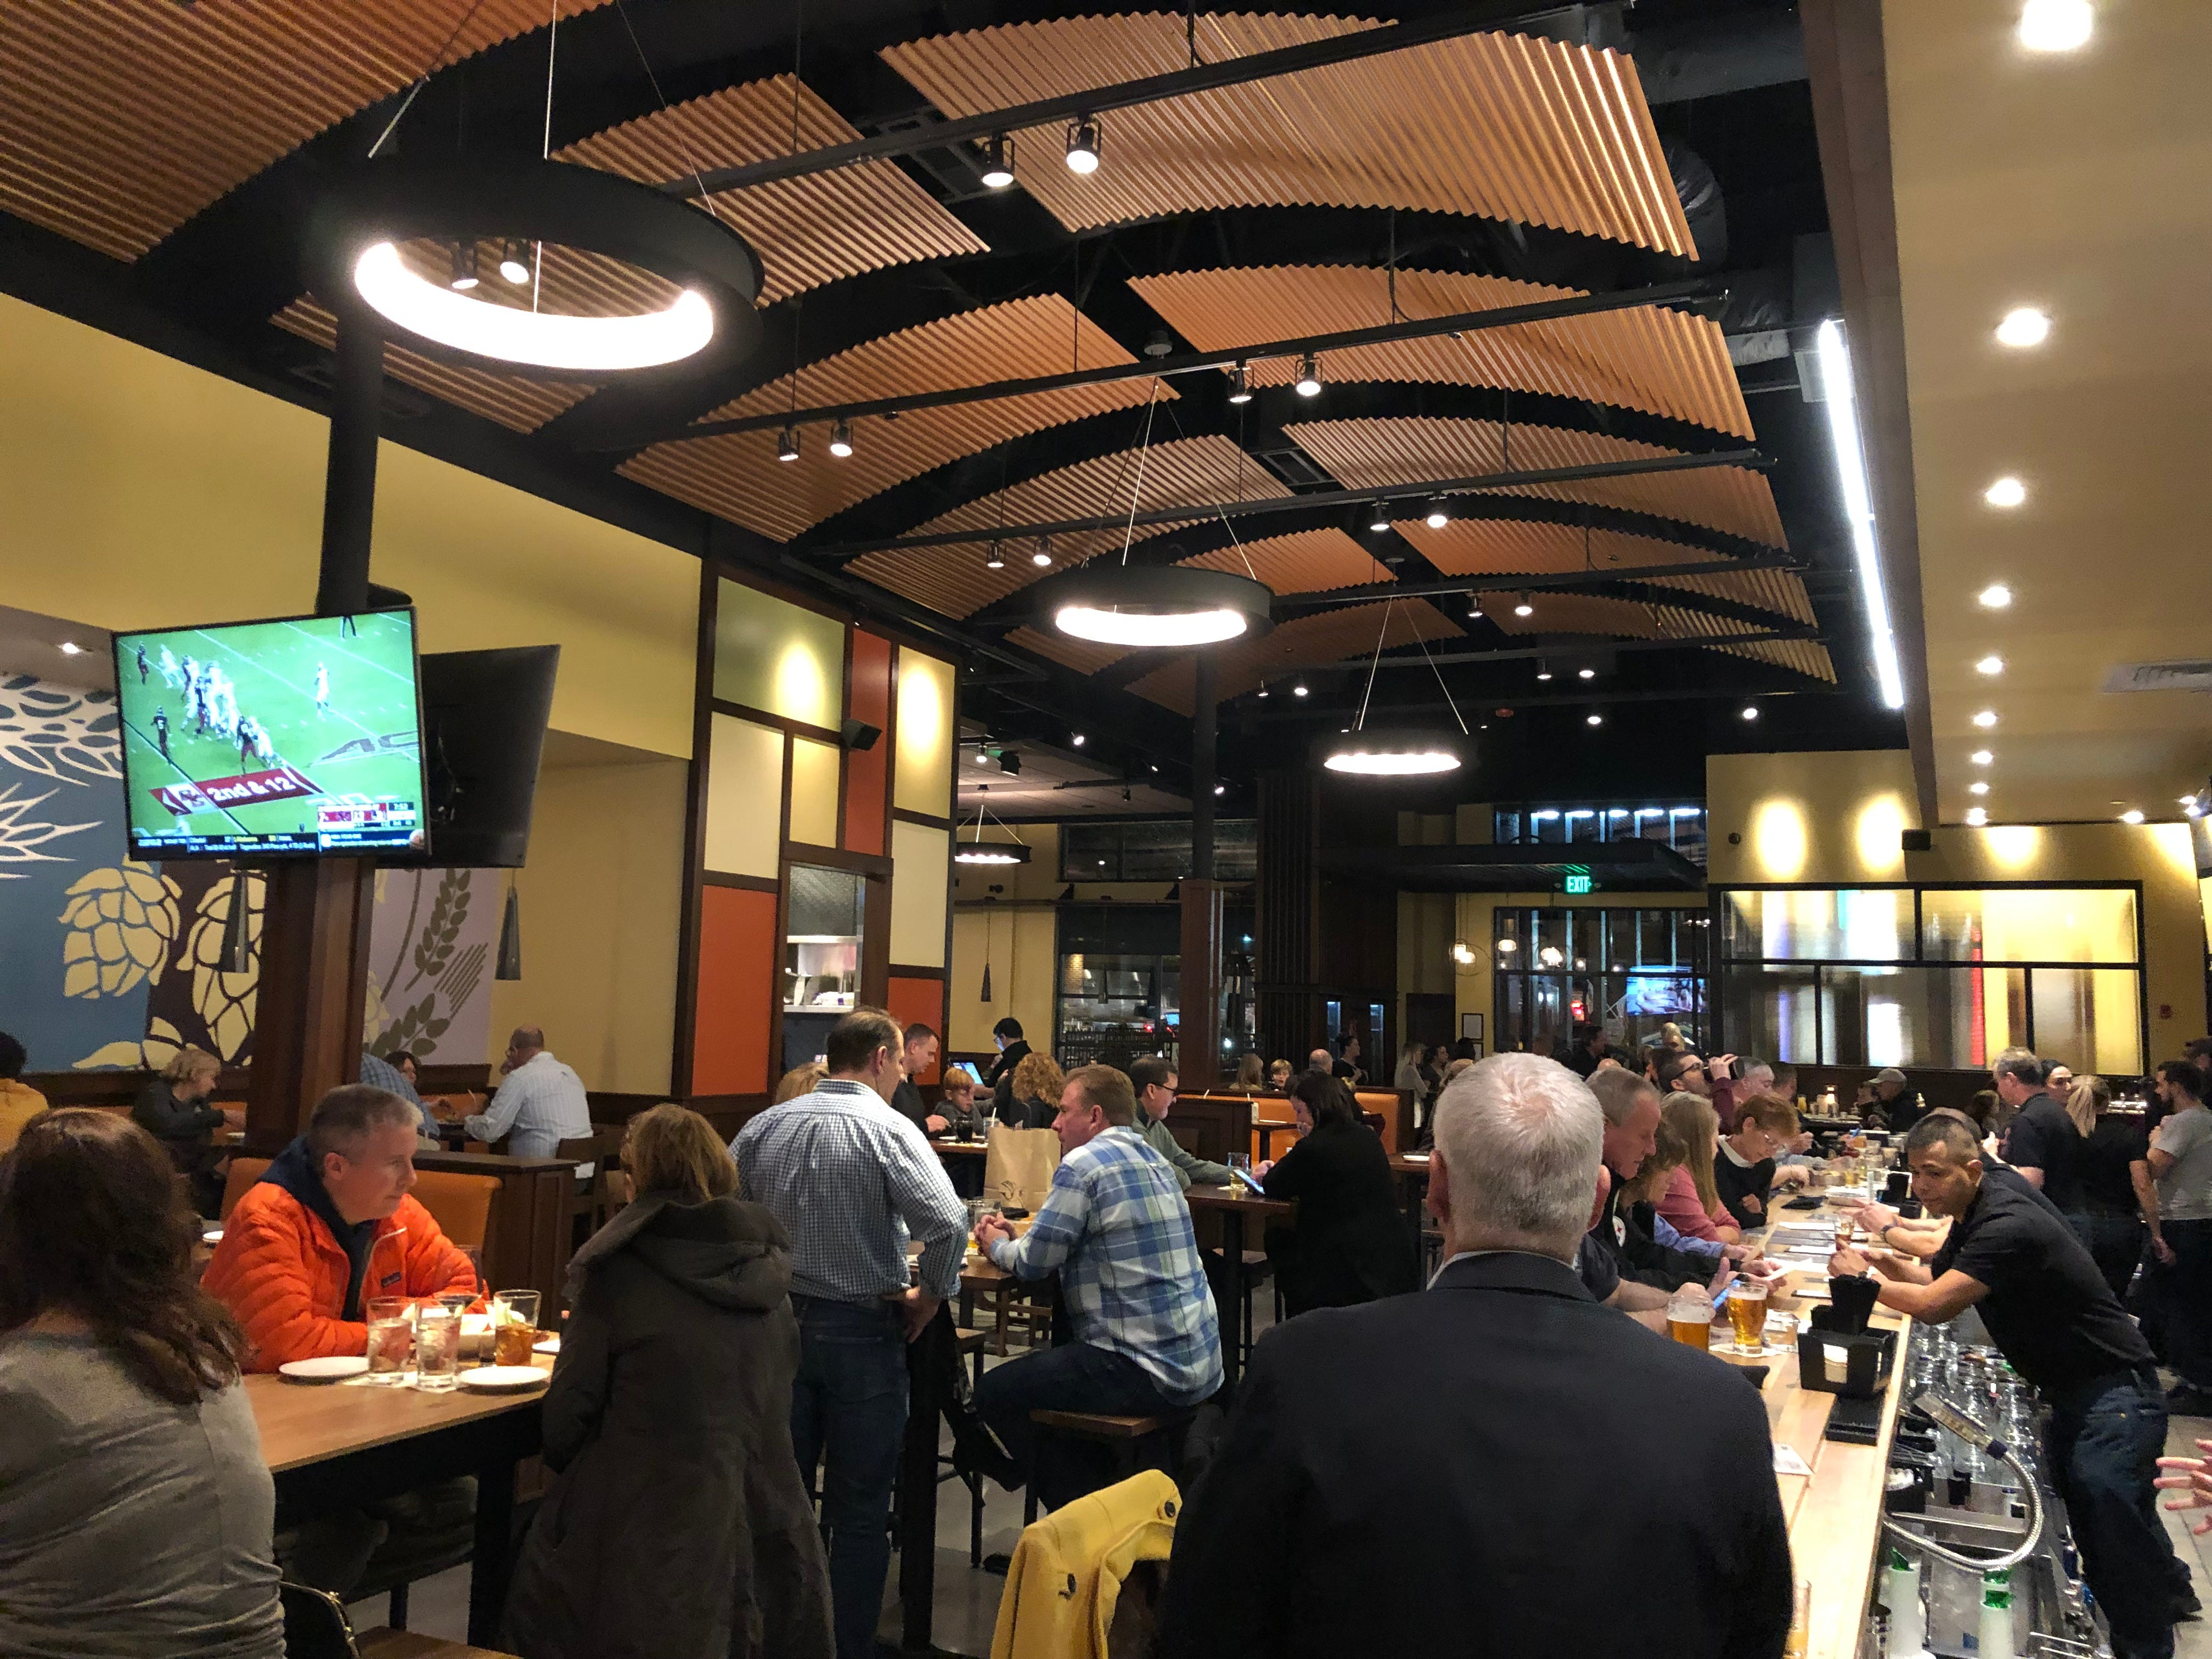 A look at the laid back, fun atmosphere inside Iron Hill Brewery & Restaurant in Hershey.